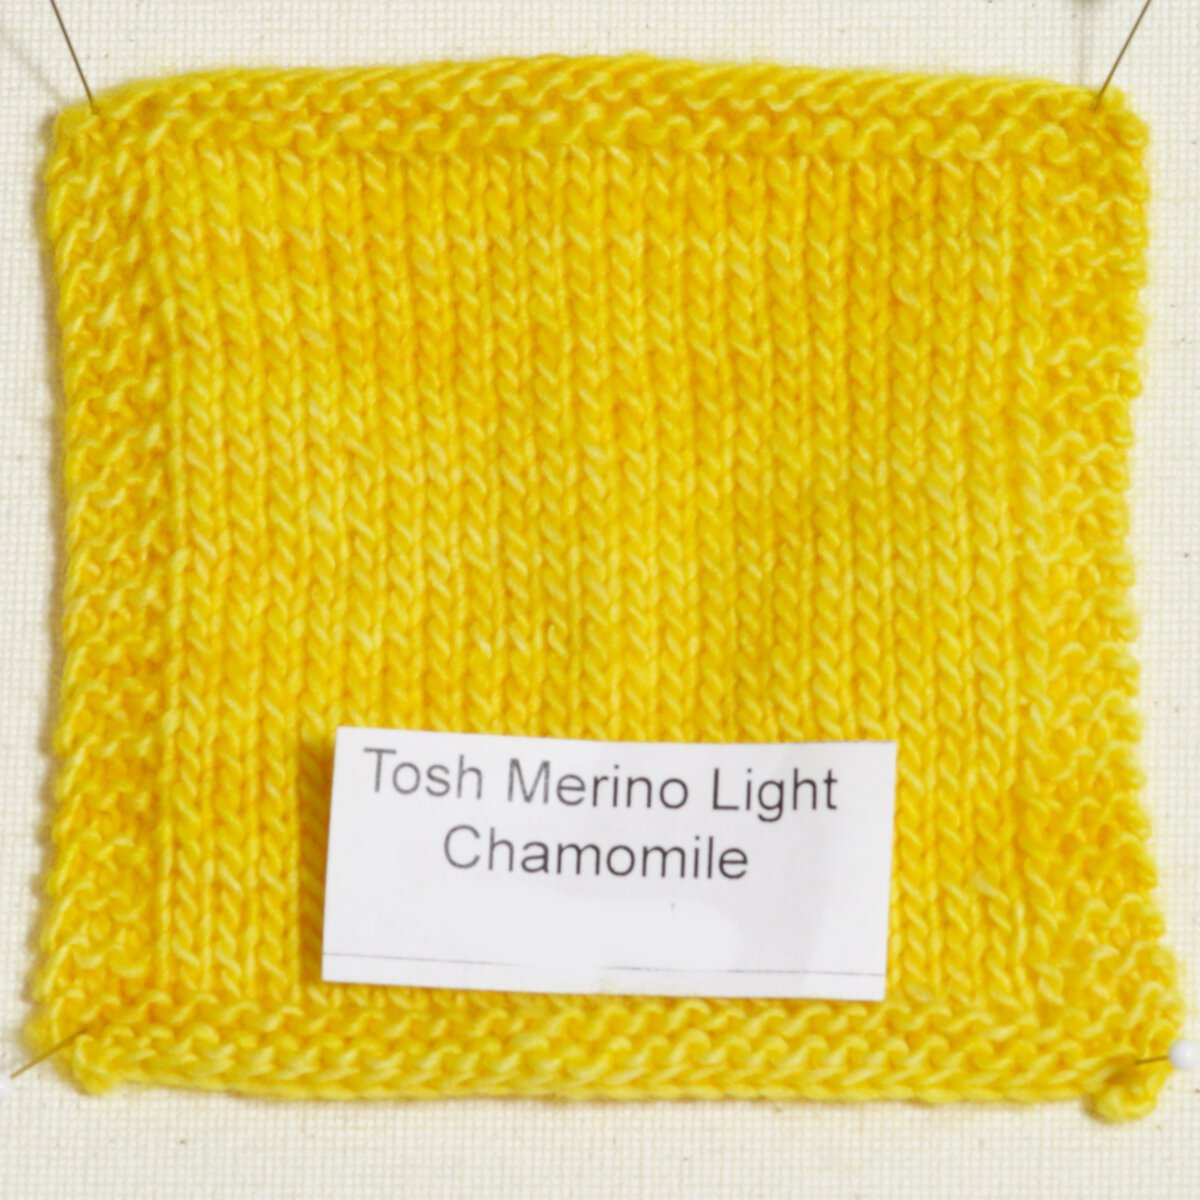 madelinetosh tosh merino light samples yarn chamomile at jimmy beans. Black Bedroom Furniture Sets. Home Design Ideas